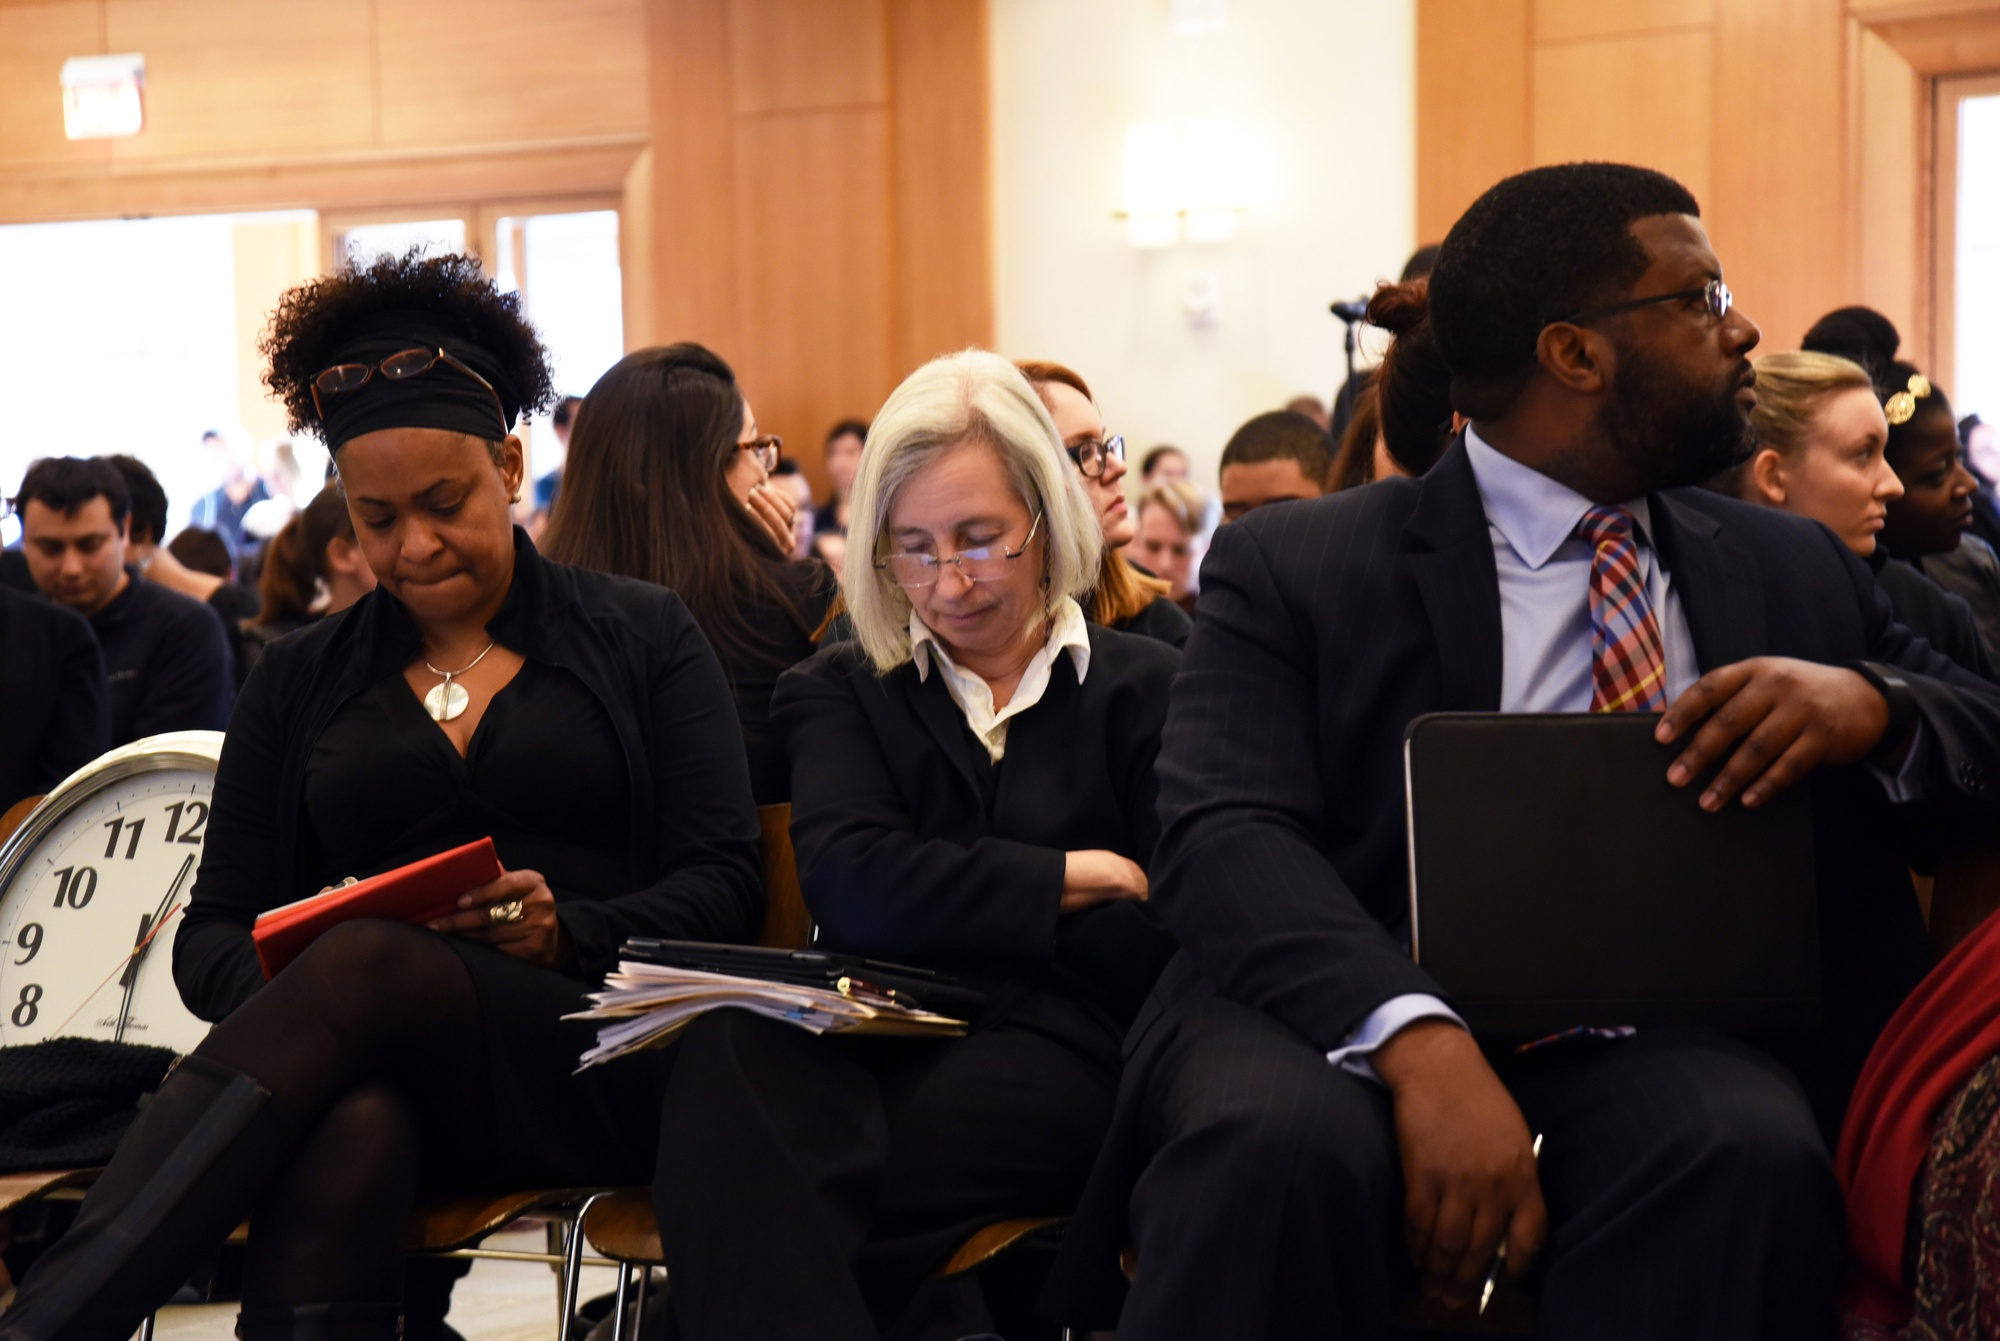 Harvard Law School Dean Martha L. Minow listens and takes notes as students voice their opinions during the community meeting on Friday afternoon.